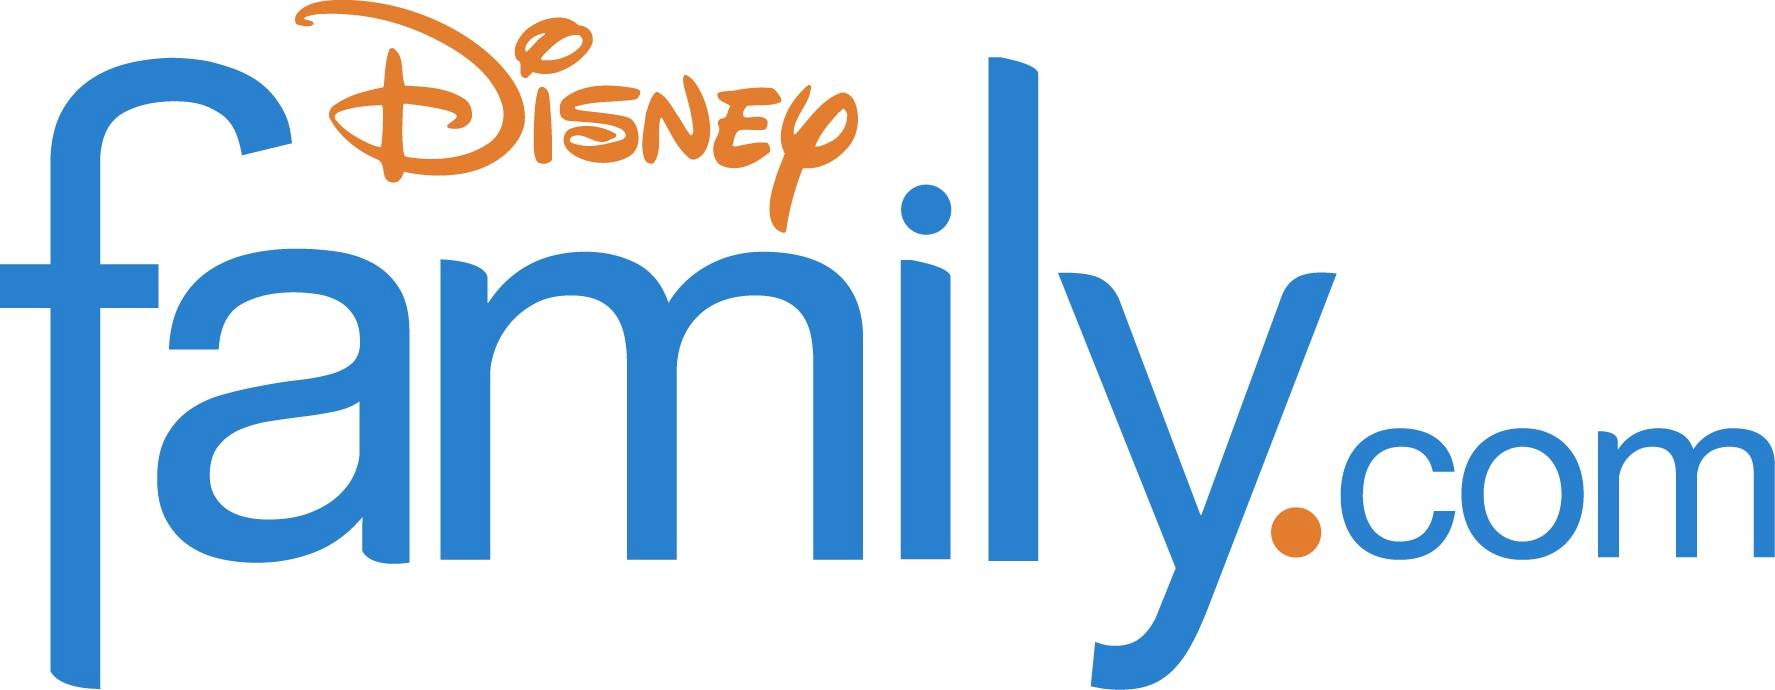 Disney Family.com Makes Traveling More Fun for Kiddos!